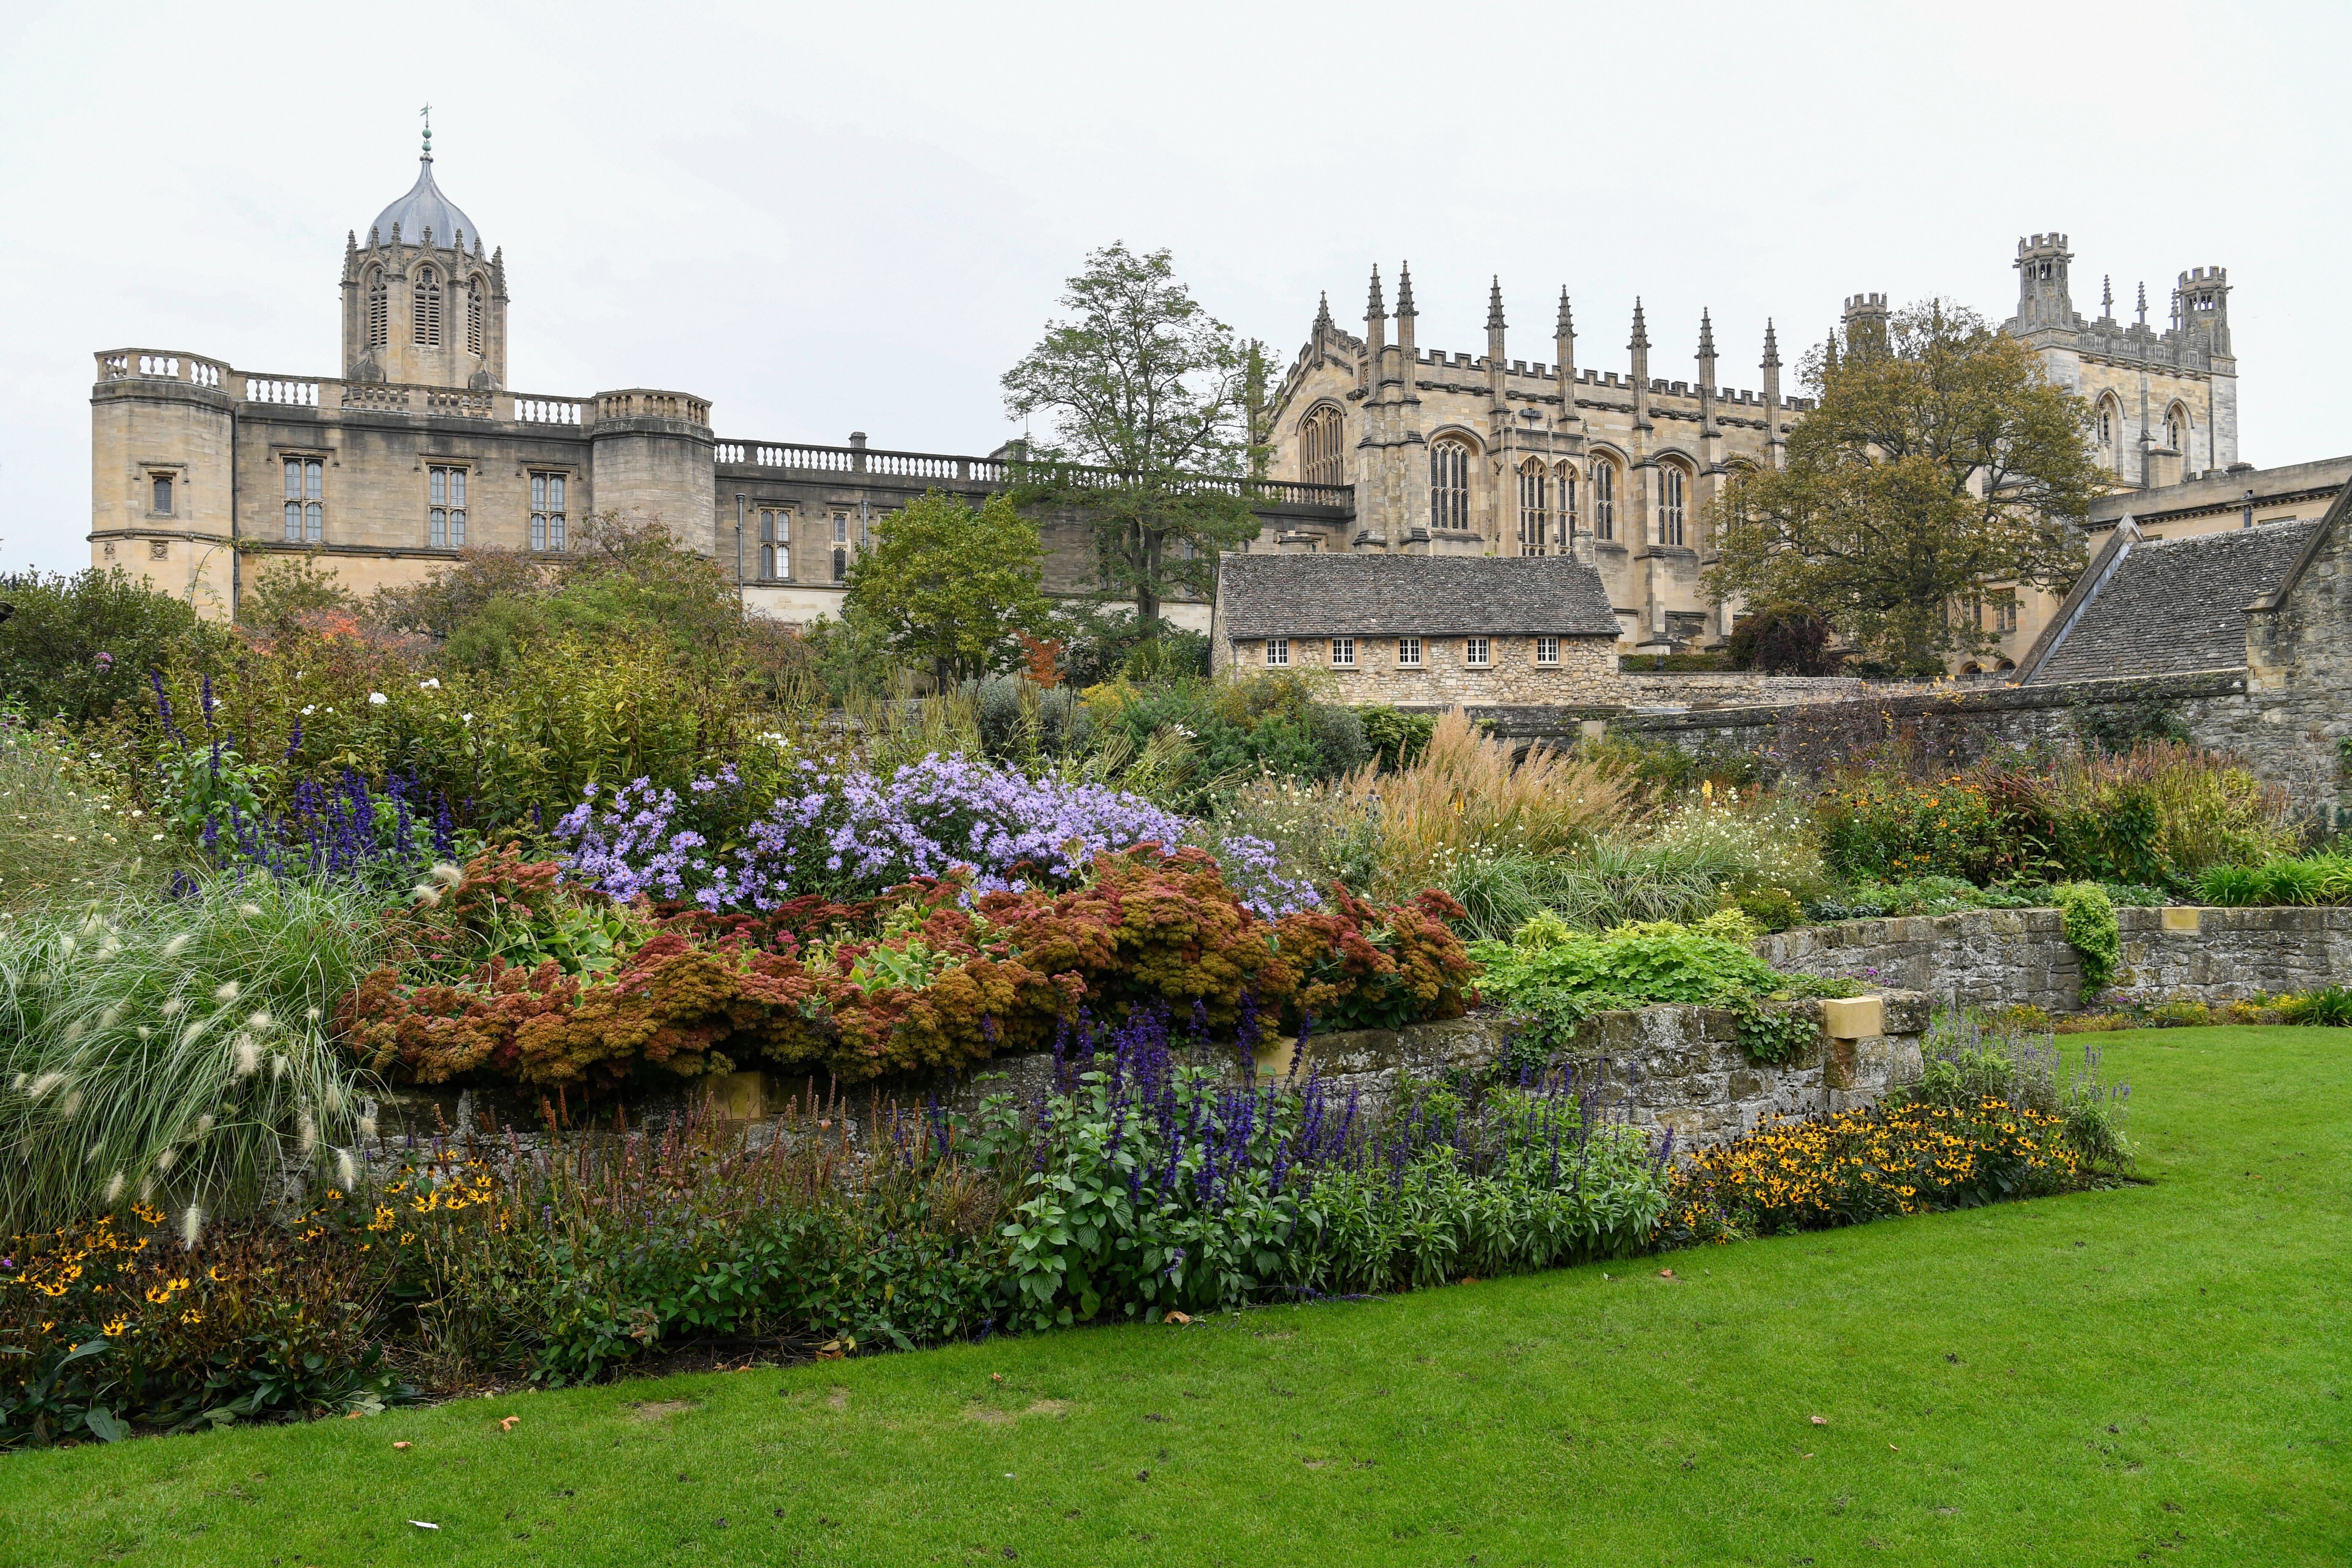 The gardens outside Christ Church college at the University of Oxford. Elder Quentin L. Cook of the Quorum of the Twelve Apostles, visits the University of Oxford in Oxford, England, on Oct. 23, 2019.